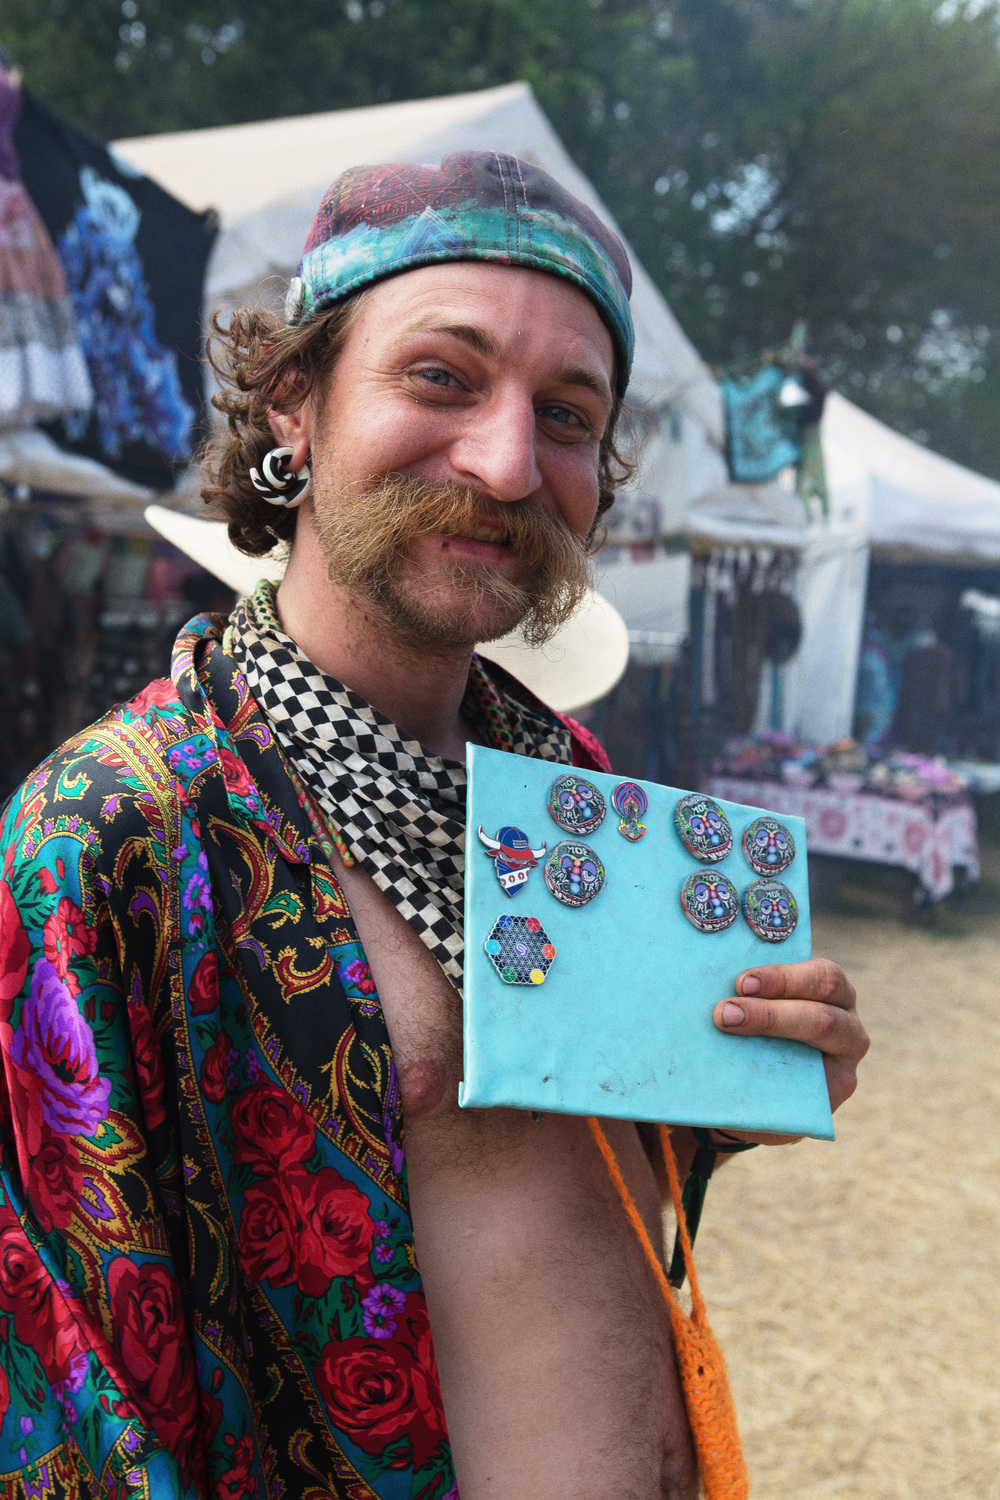 Pins are In    Walking around the festival, there were a lot of people trading pins. I couldn't help but ask this gentlemen and his mustache for a picture.